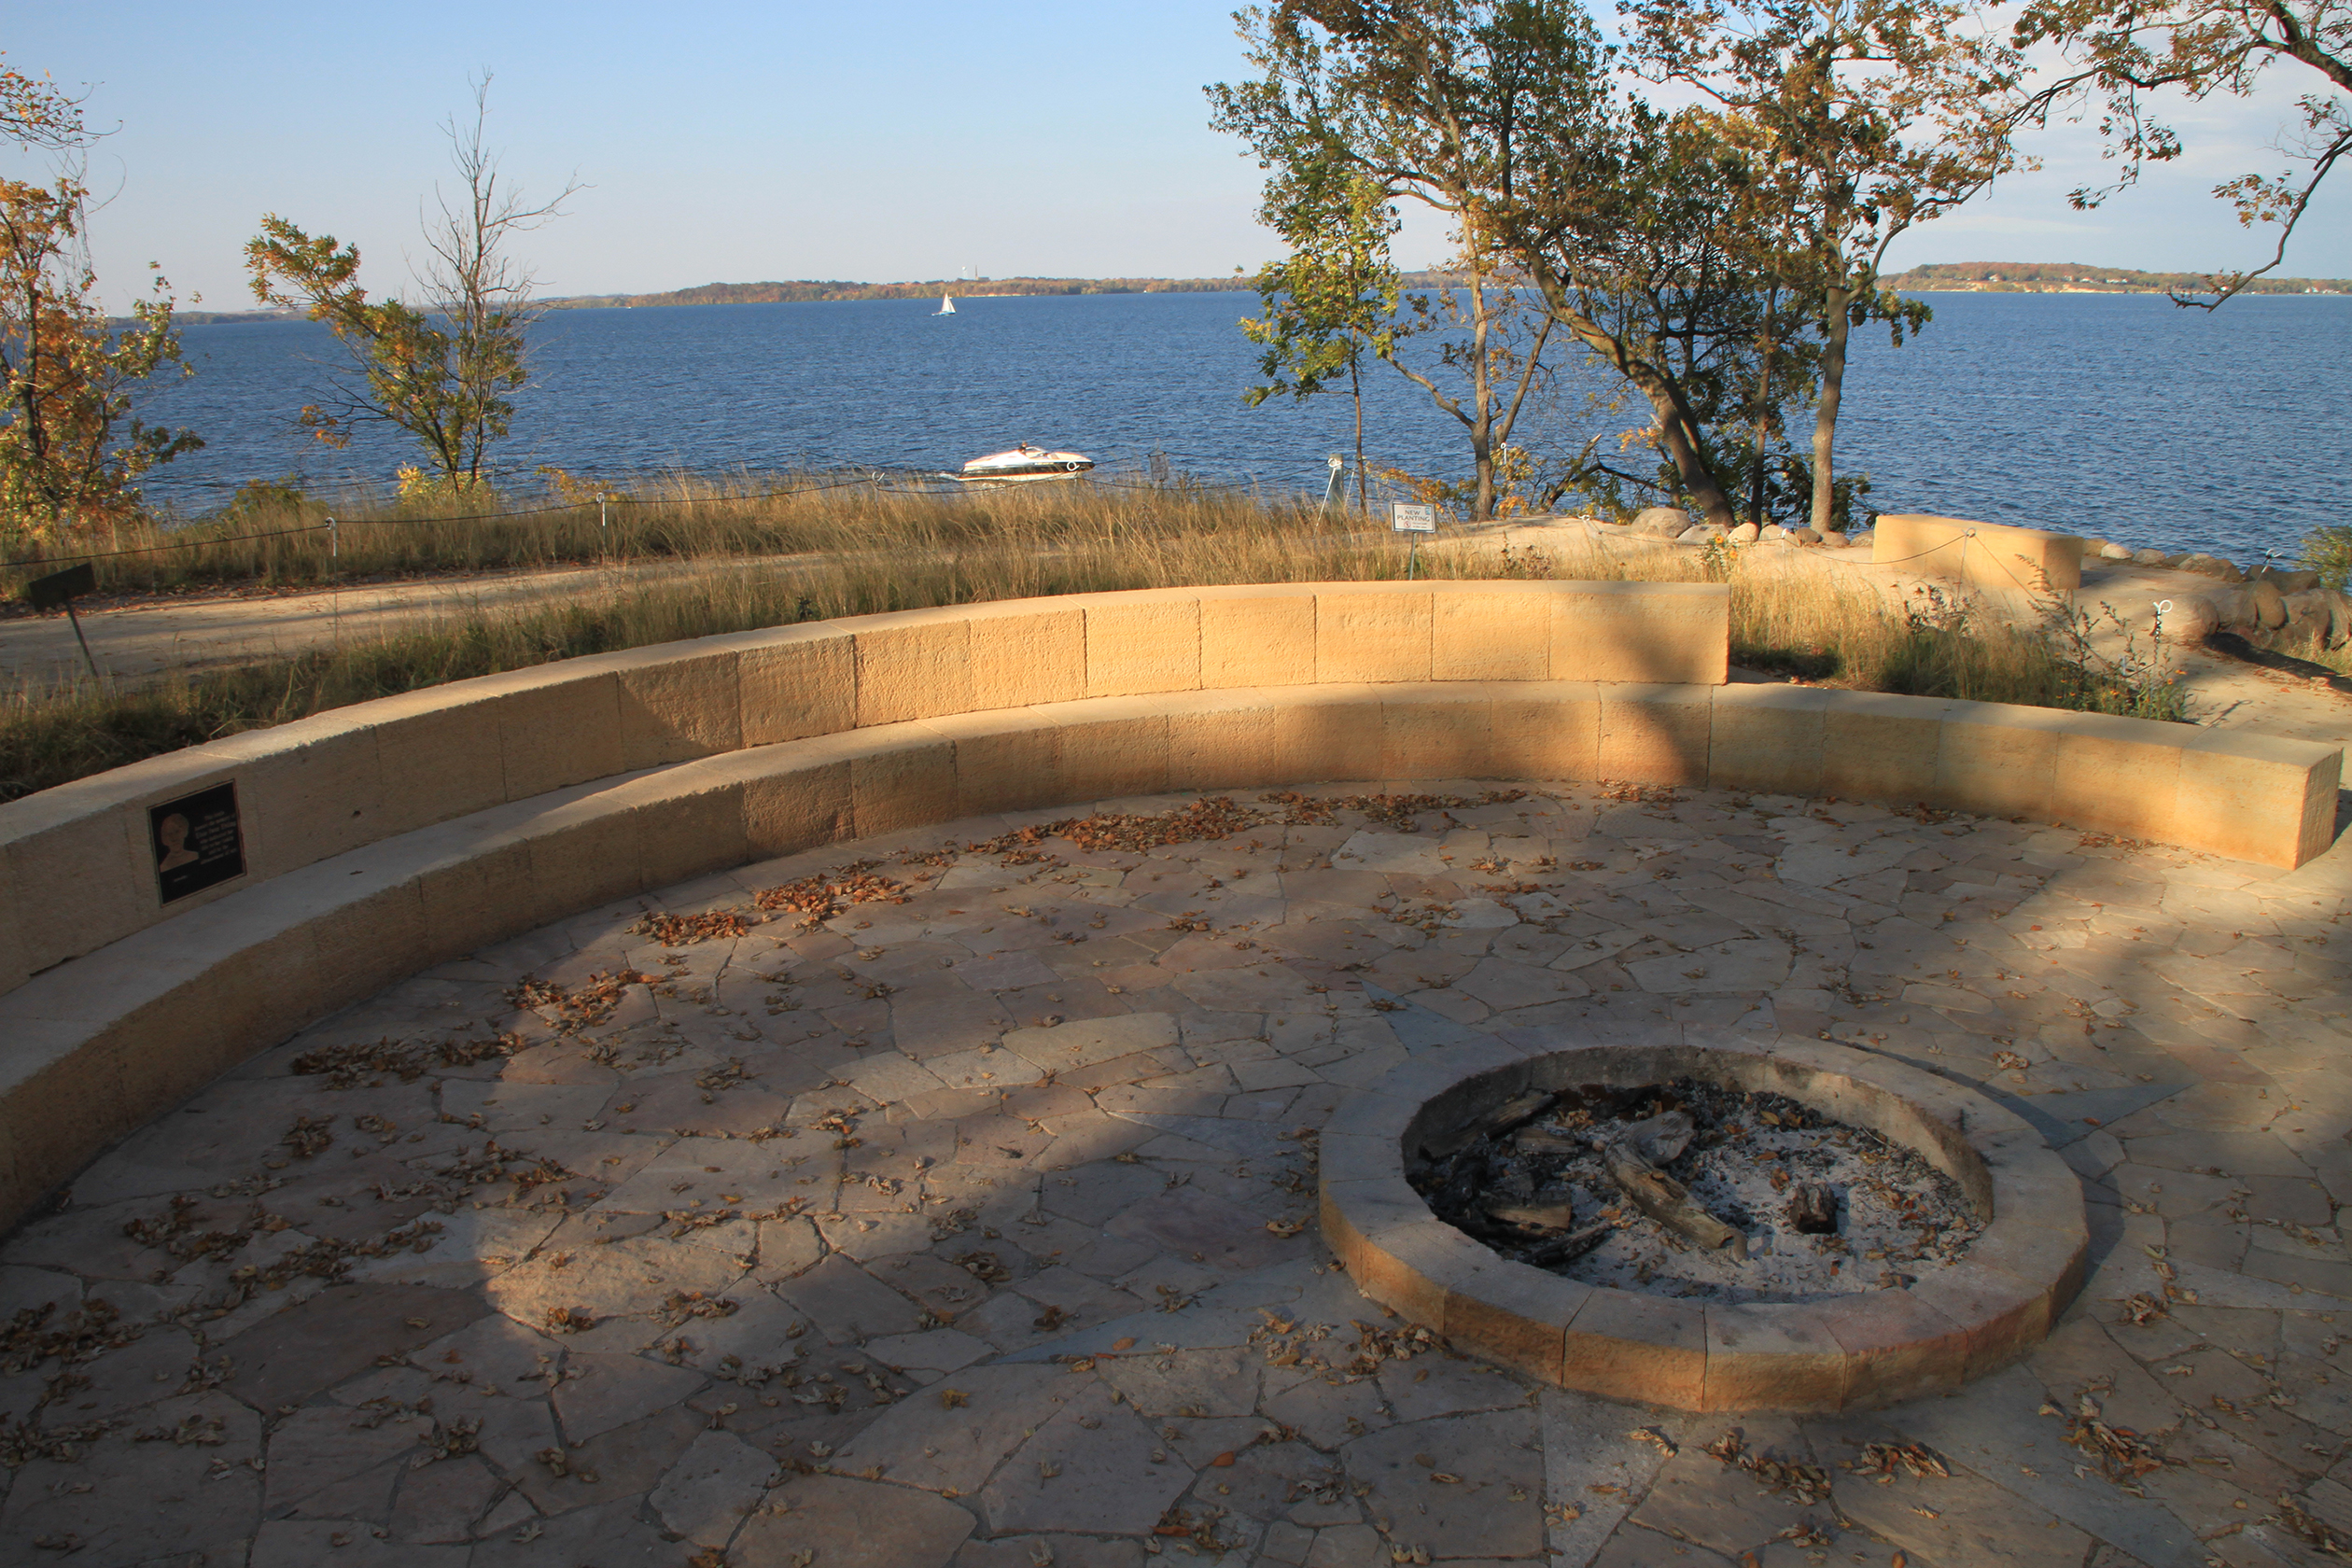 A natural stone council ring serves as the central gathering space; a place for storytelling and campfires and continuing conversations influenced by the University's environmental ethic.